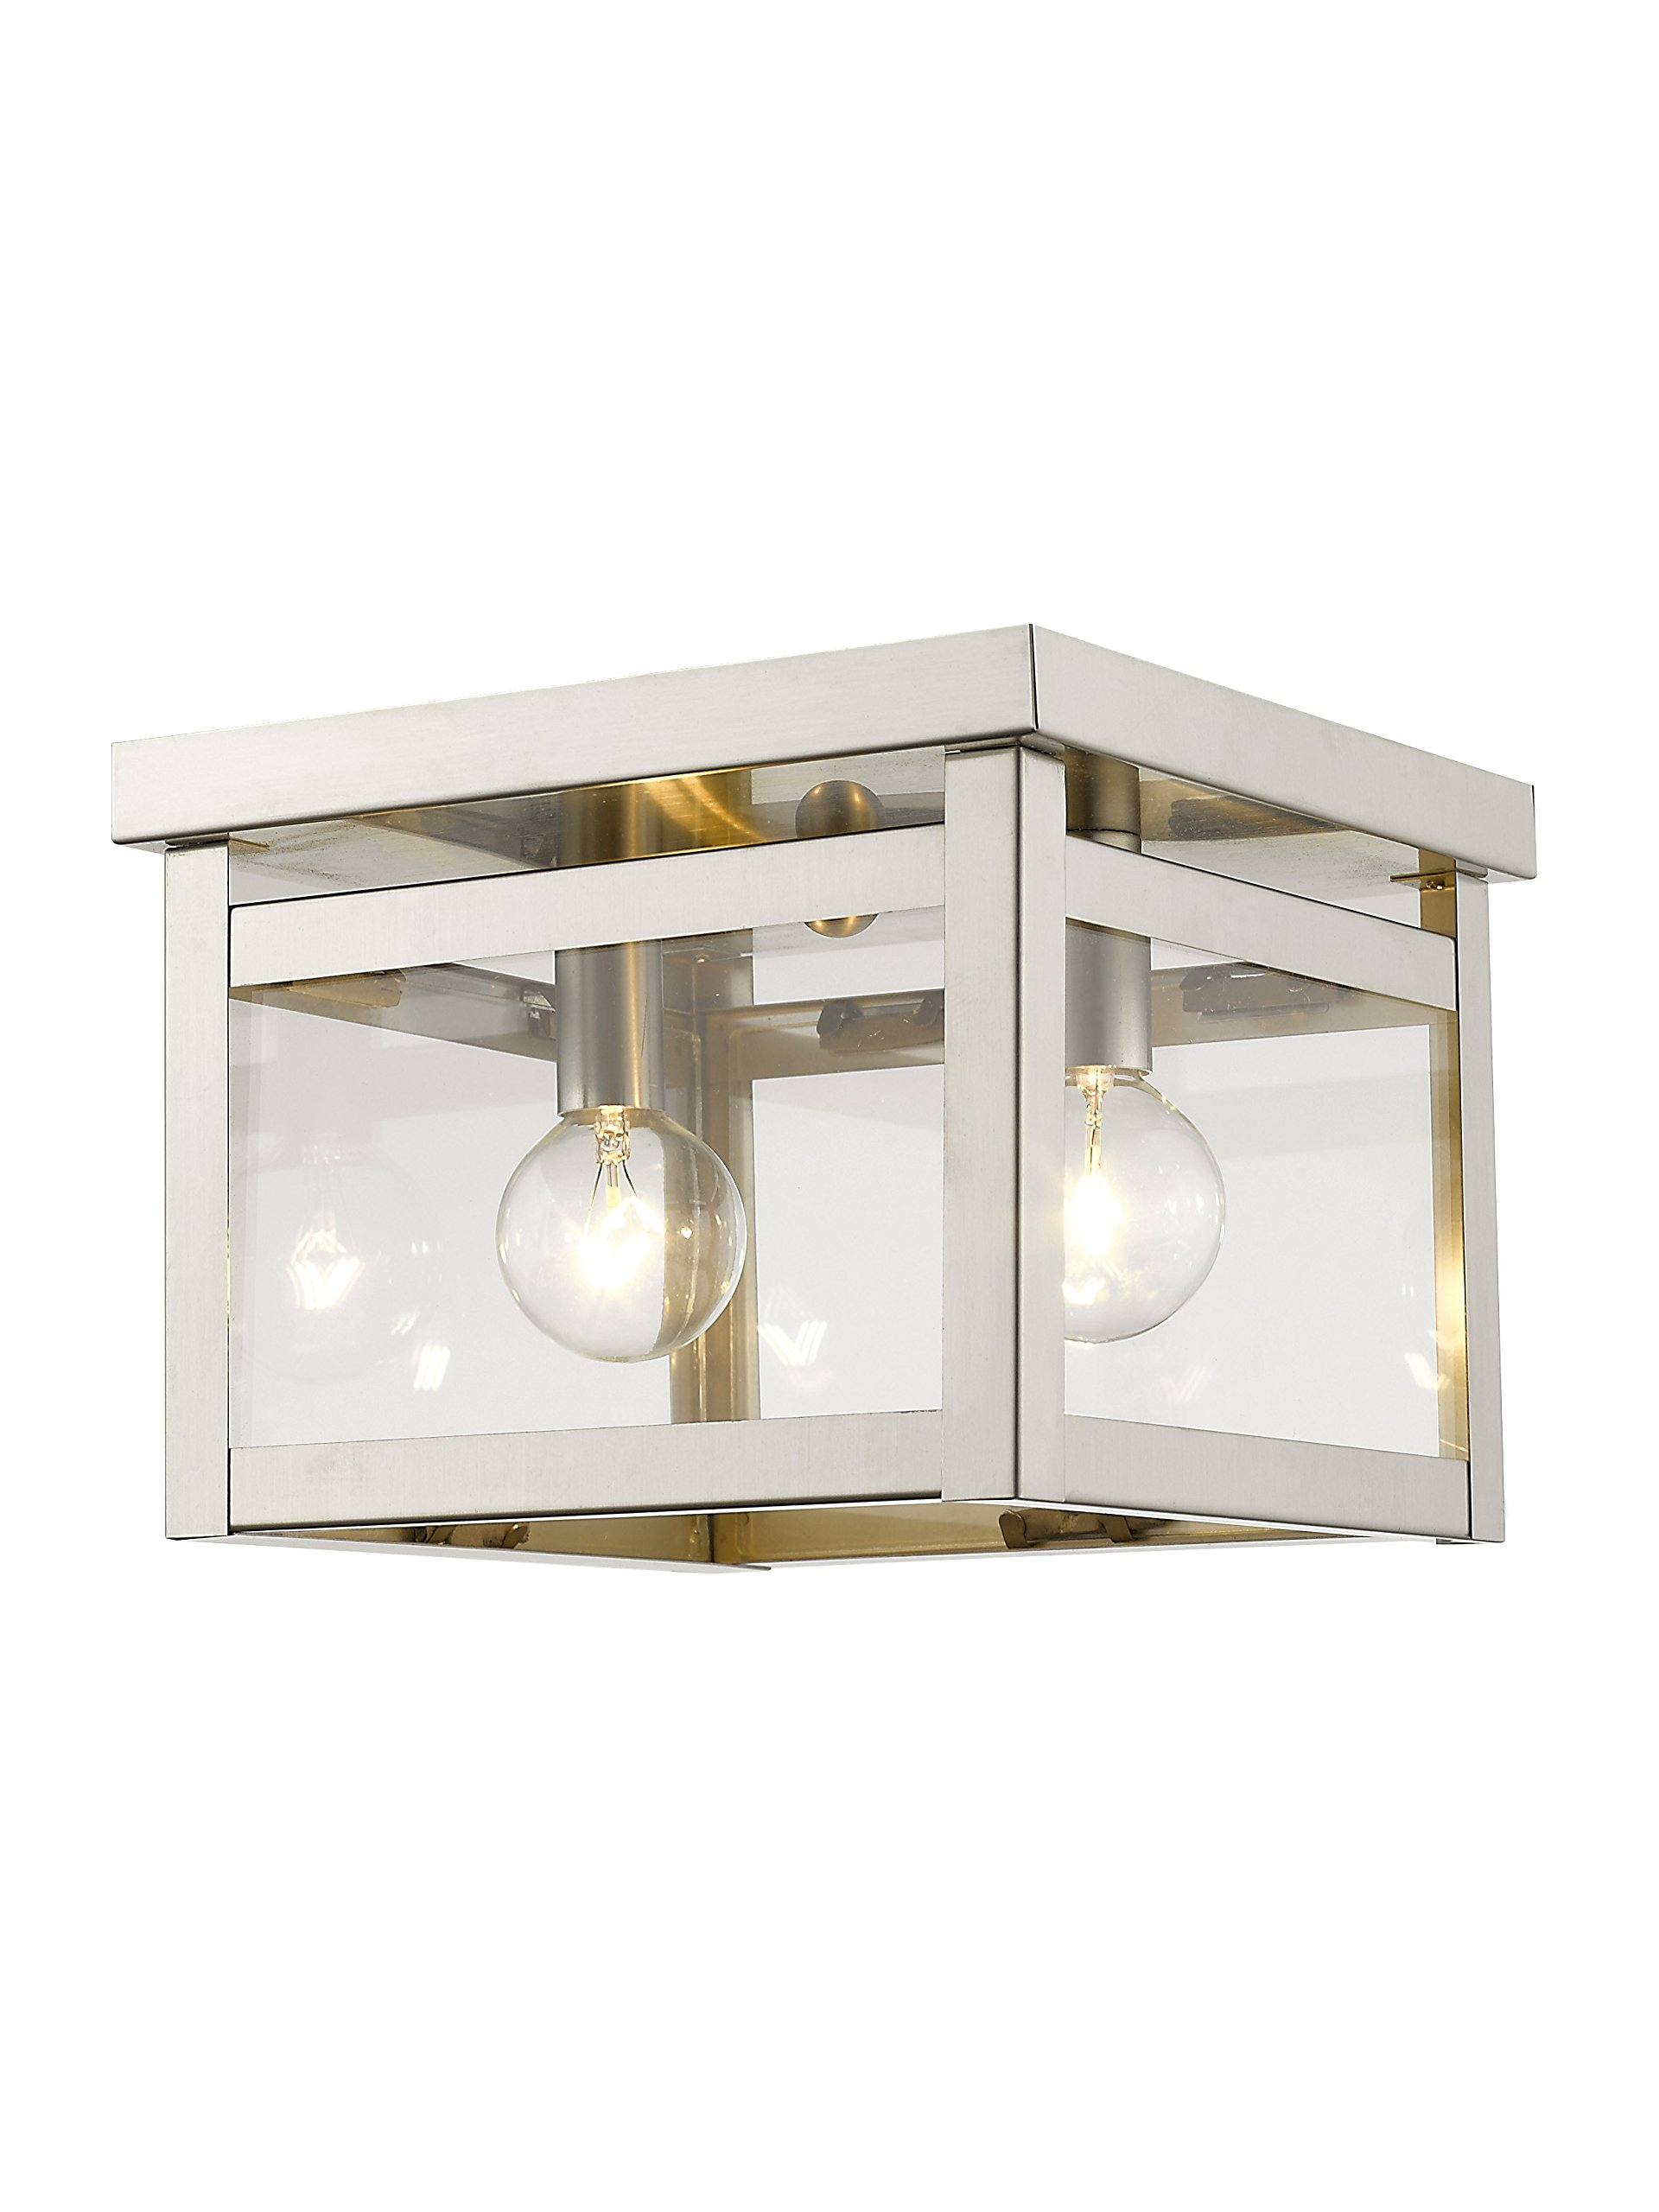 Livex Lighting 4031-91 Milford 2-Light Ceiling Mount, Brushed Nickel